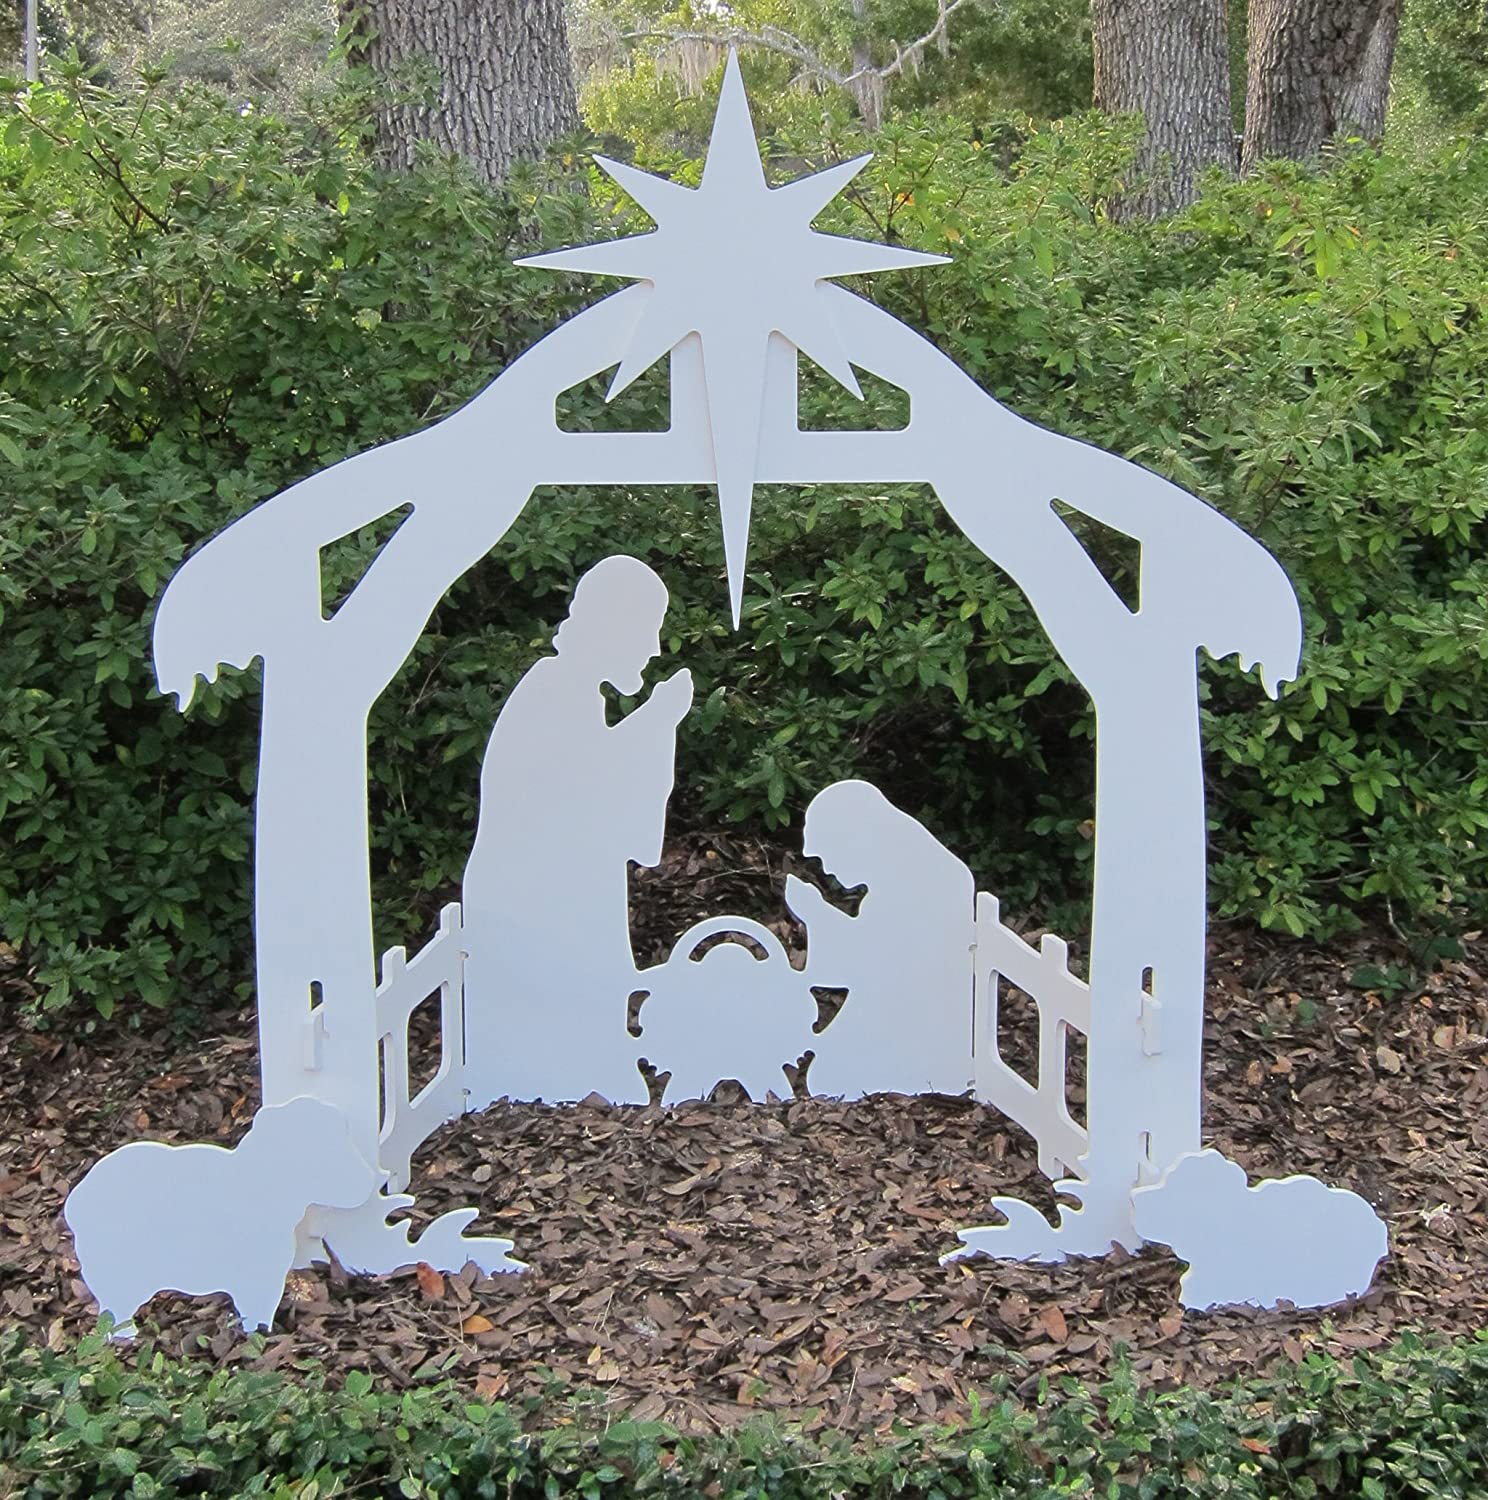 Nativity Scene Outdoor Christmas Decoration: Christmas Garden Decorations: Santa, Deer, Nativity Sets